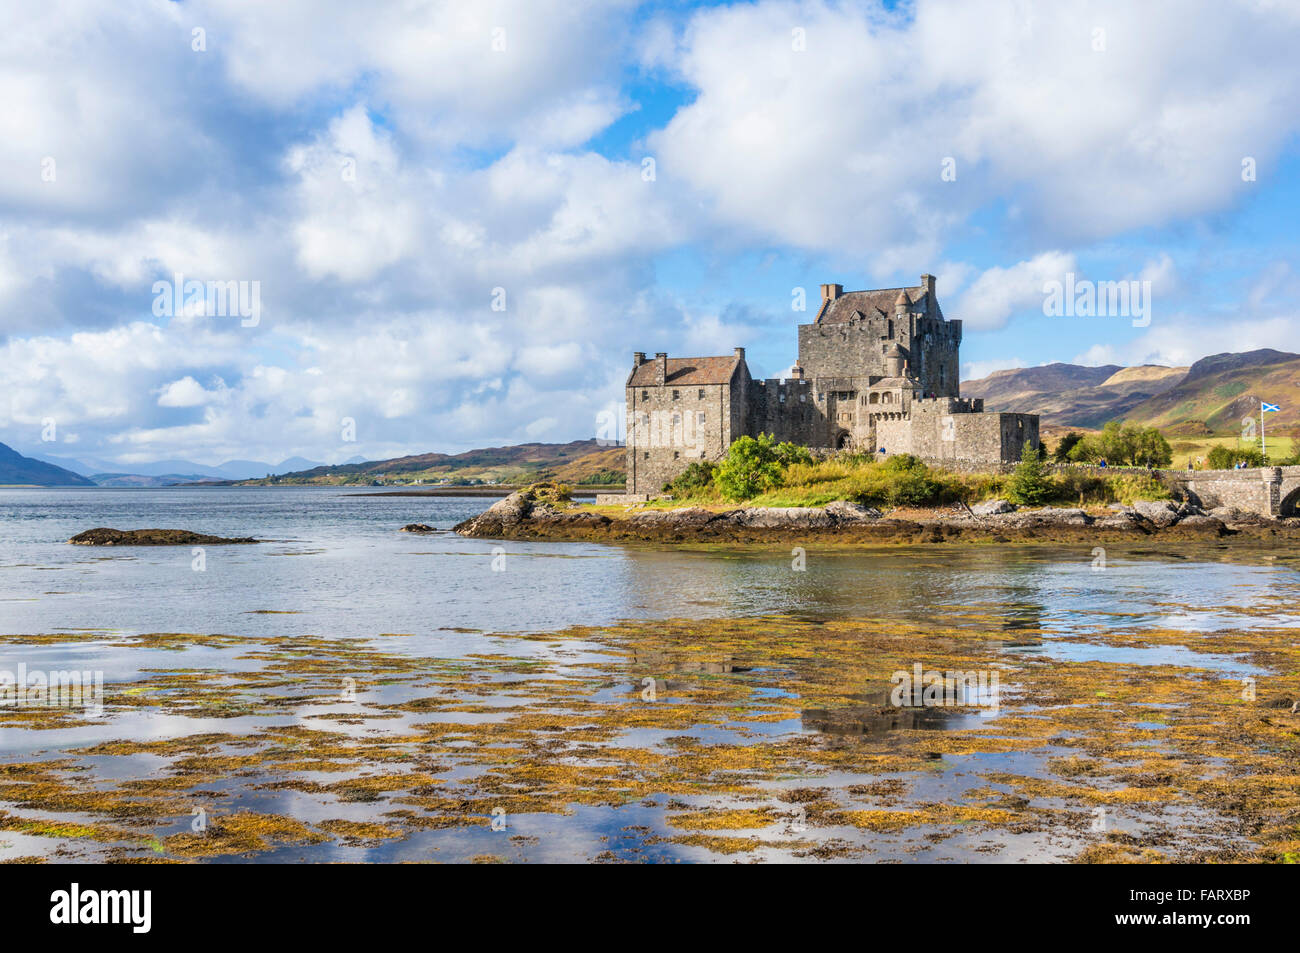 Eilean Donan Castle on the shore of Loch Duich Ross and Cromarty Western Highlands of Scotland UK GB EU Europe - Stock Image